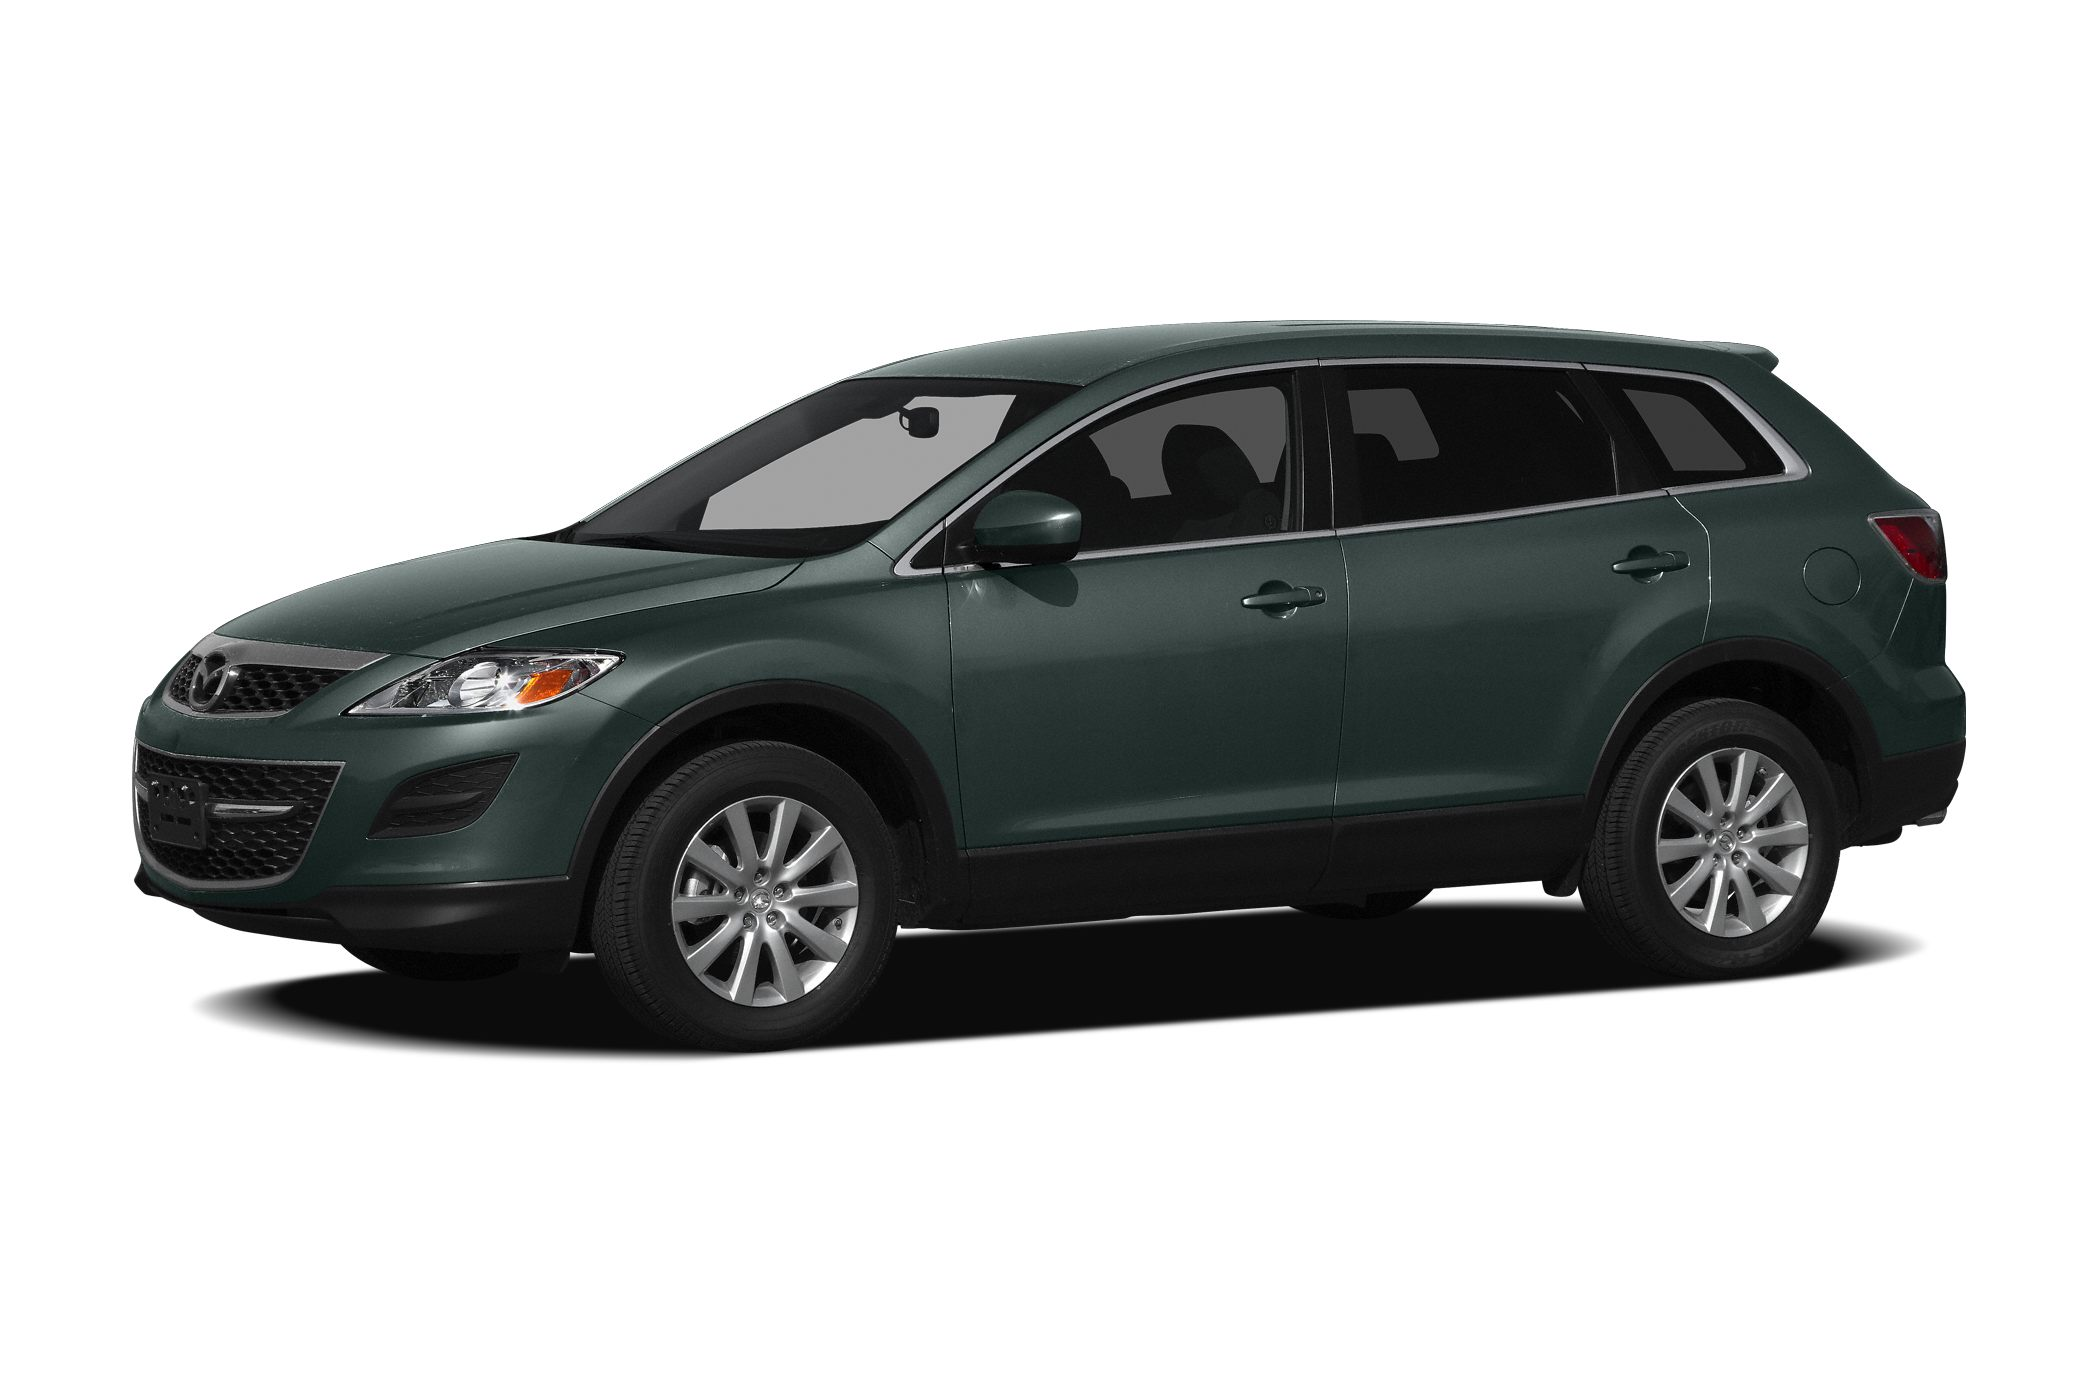 2011 Mazda CX-9 Touring SUV for sale in Huntsville for $22,998 with 29,780 miles.